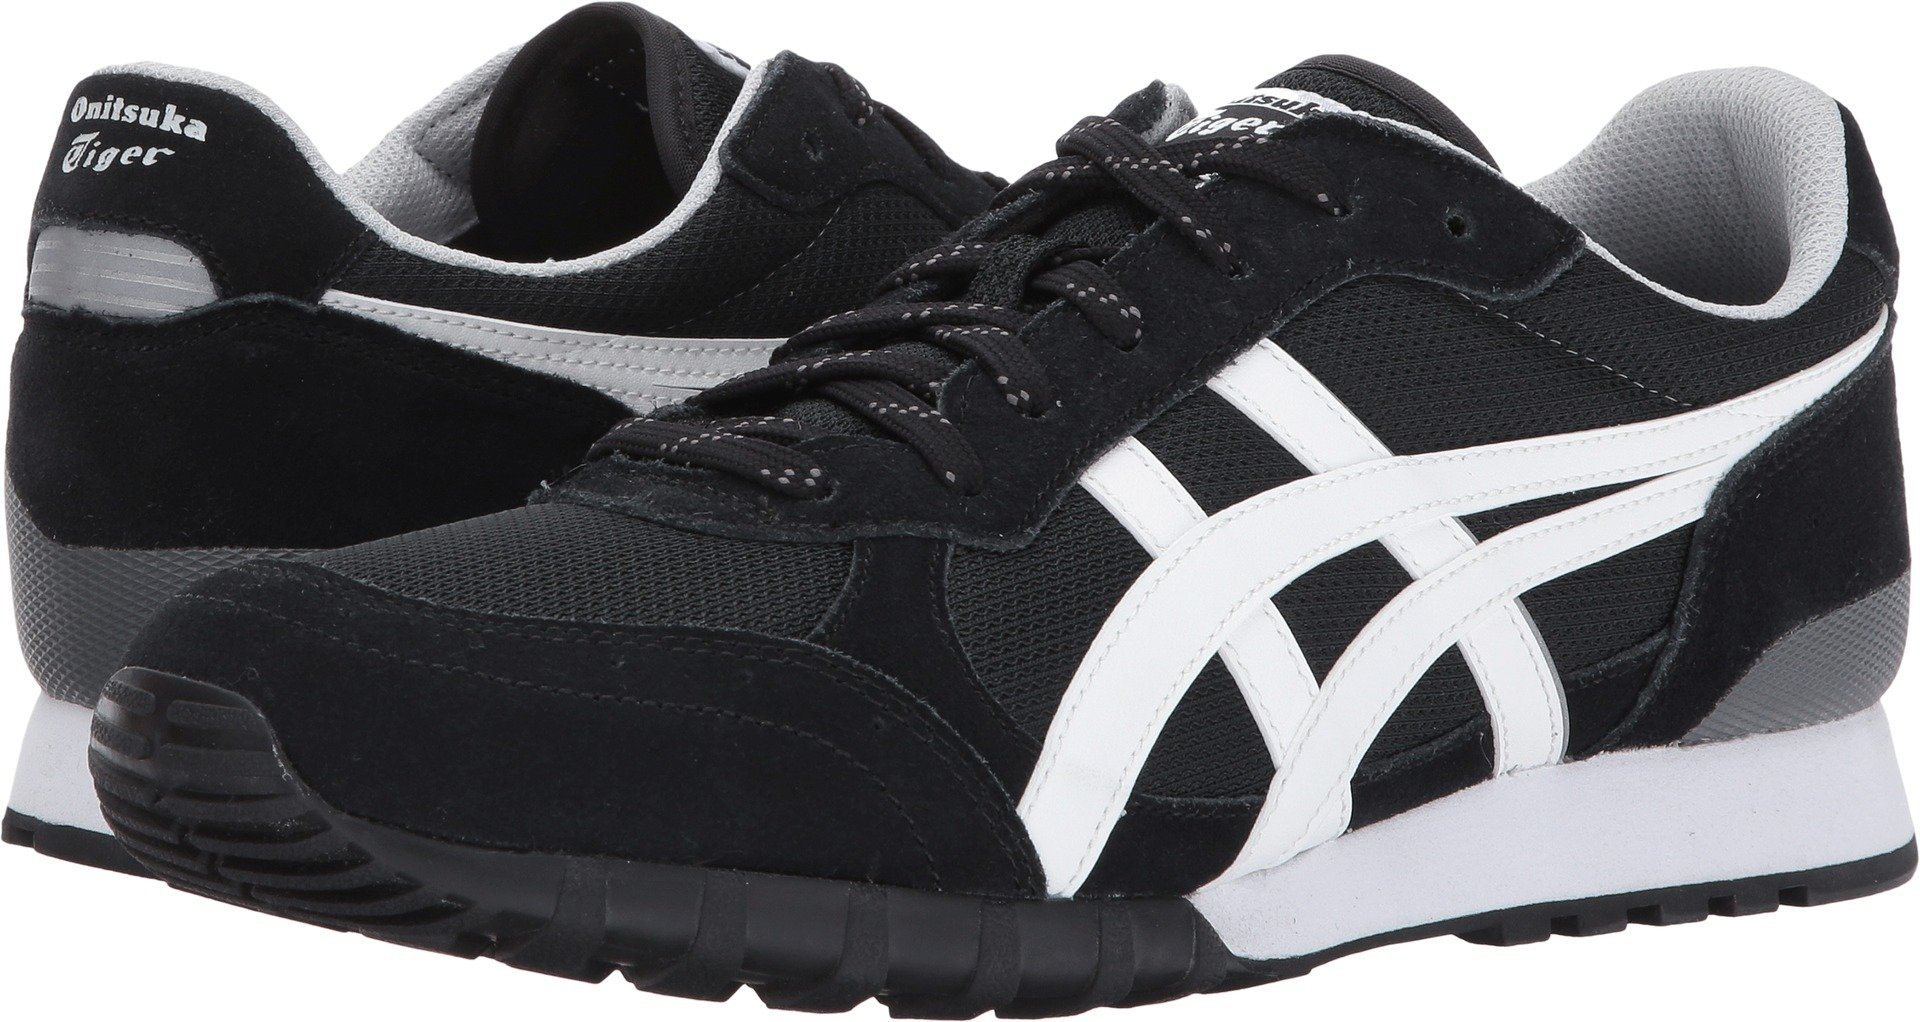 Onitsuka Tiger by Asics Unisex Colorado Eighty-Five Black/White Sneaker  product image